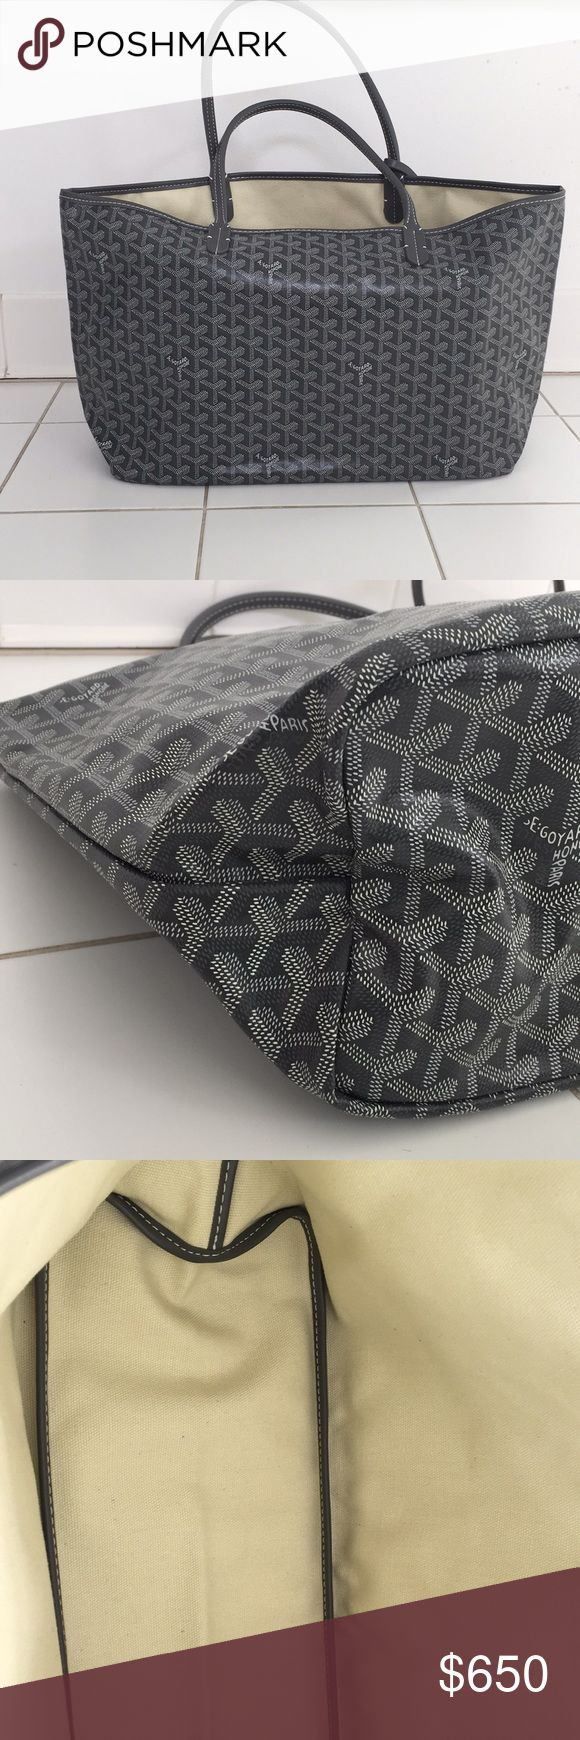 Goyard St Louis Tote Goyard tote- grey. Hardly used. Excellent condition. No tears, rips or stains!! I don't have any tags or dust bag. Price is reflective of missing piece. Goyard Bags Totes